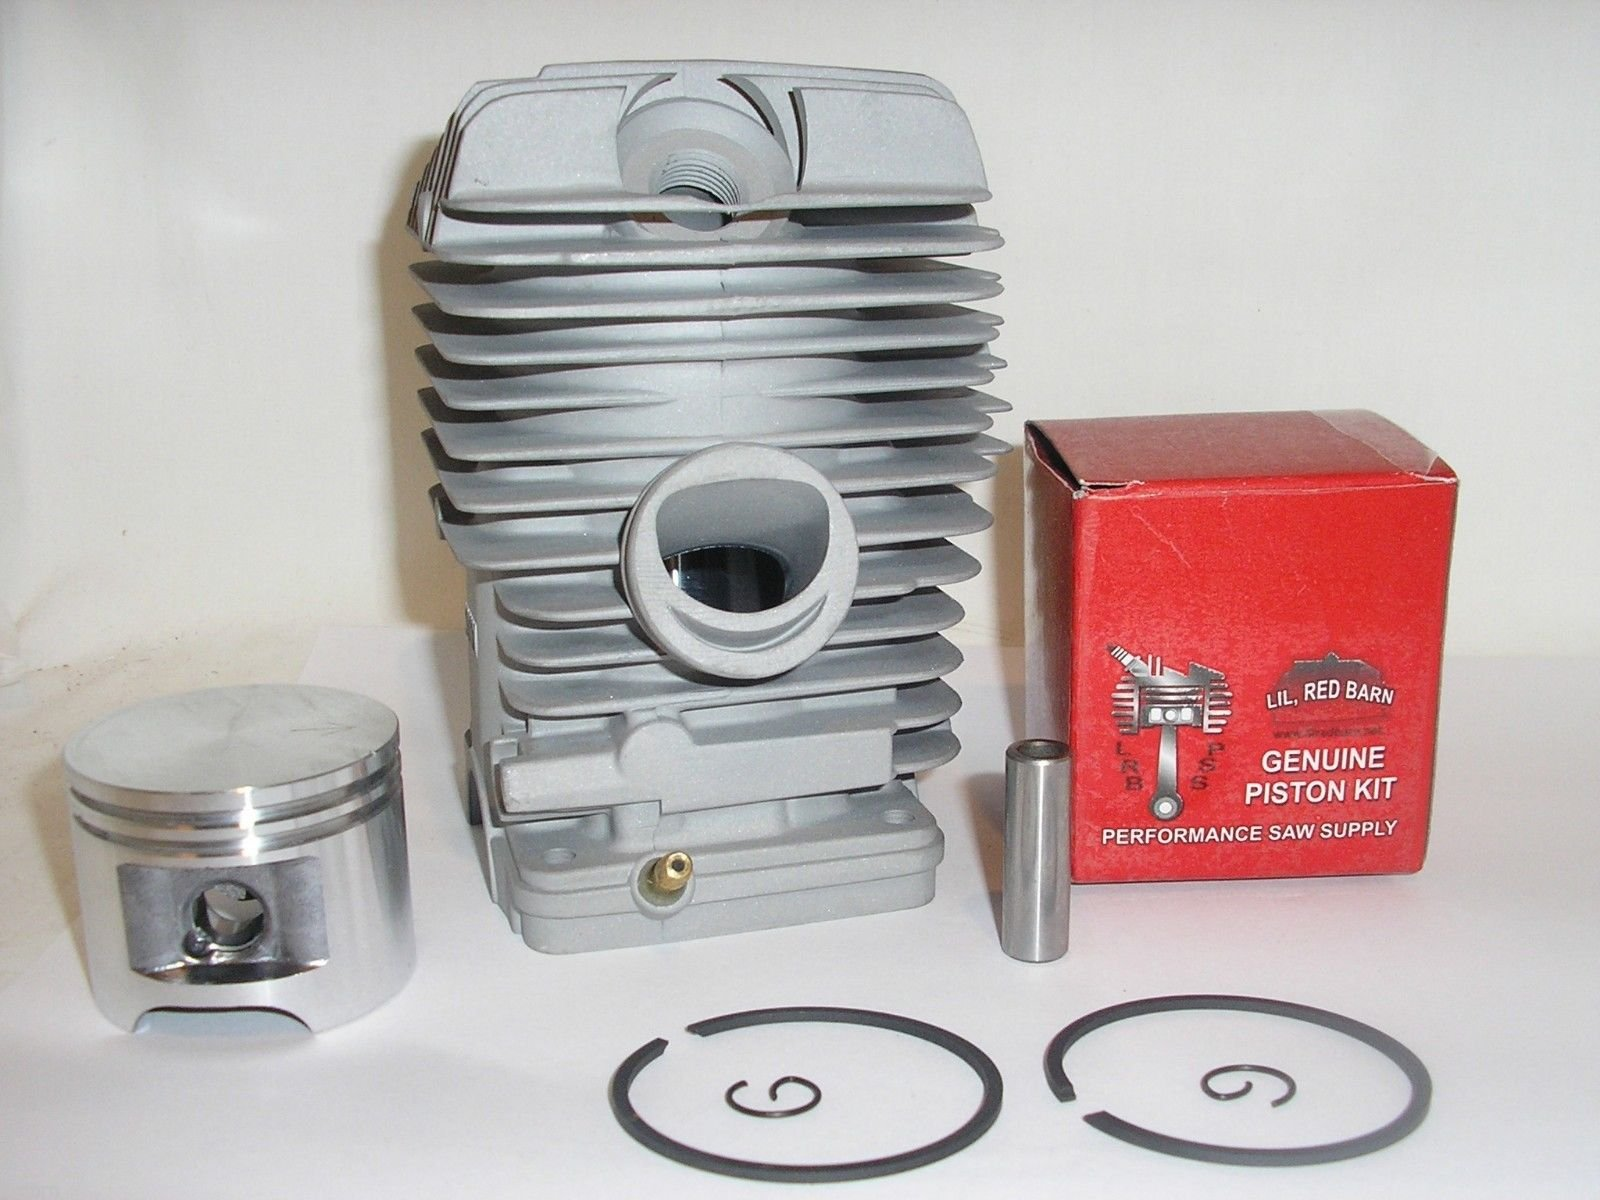 Lil Red Barn Stihl MS310 Cylinder & Piston Kit,47mm, Replaces Stihl # 1127-020-1214 Installation Instructions Included Two Day Standard Shipping to All 50 States!